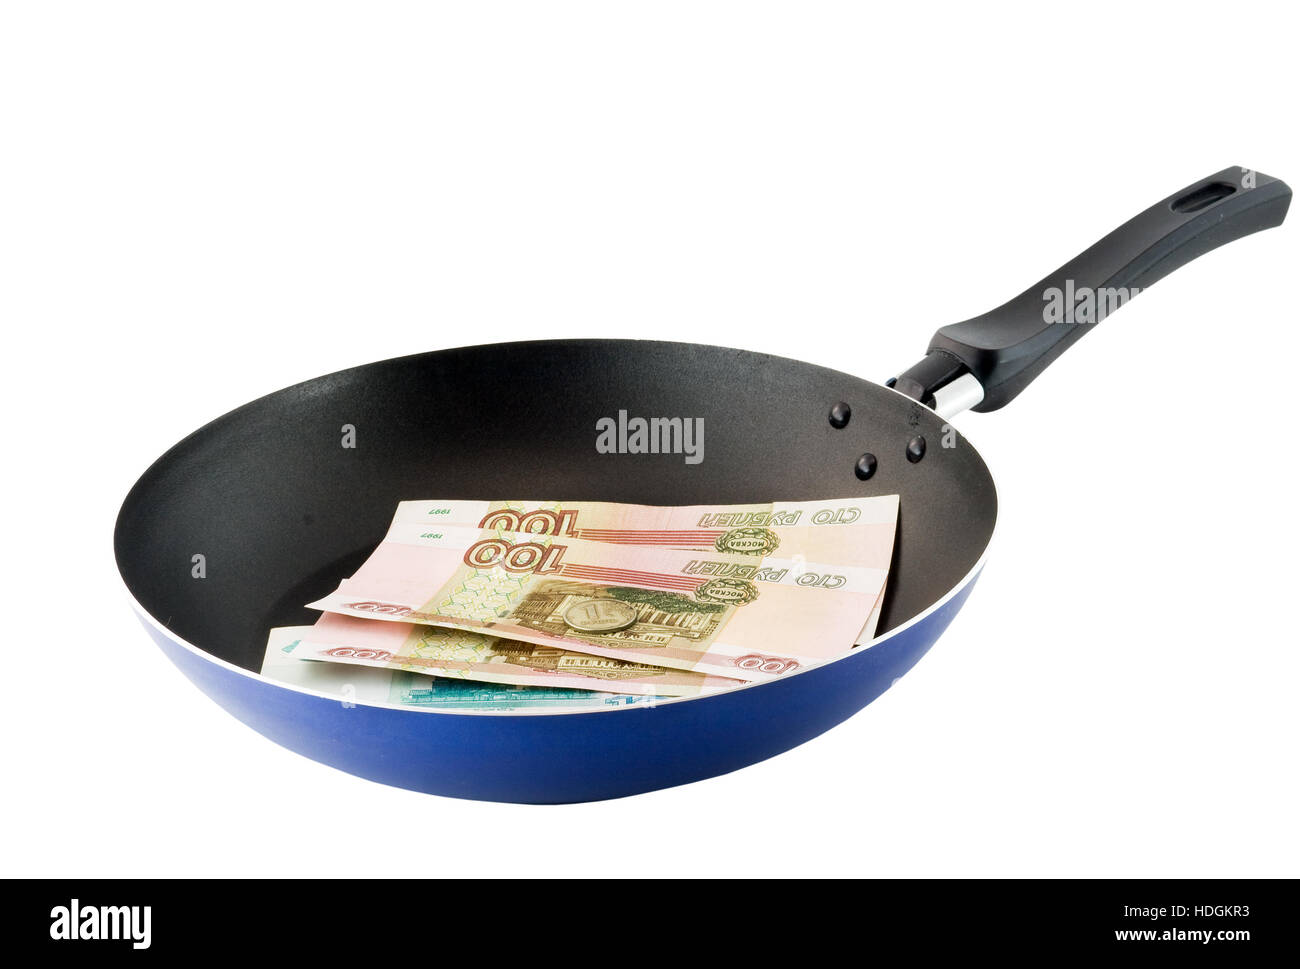 Frying pan with the russians moneys- roubles. Fried money.Top view. Isolated - Stock Image